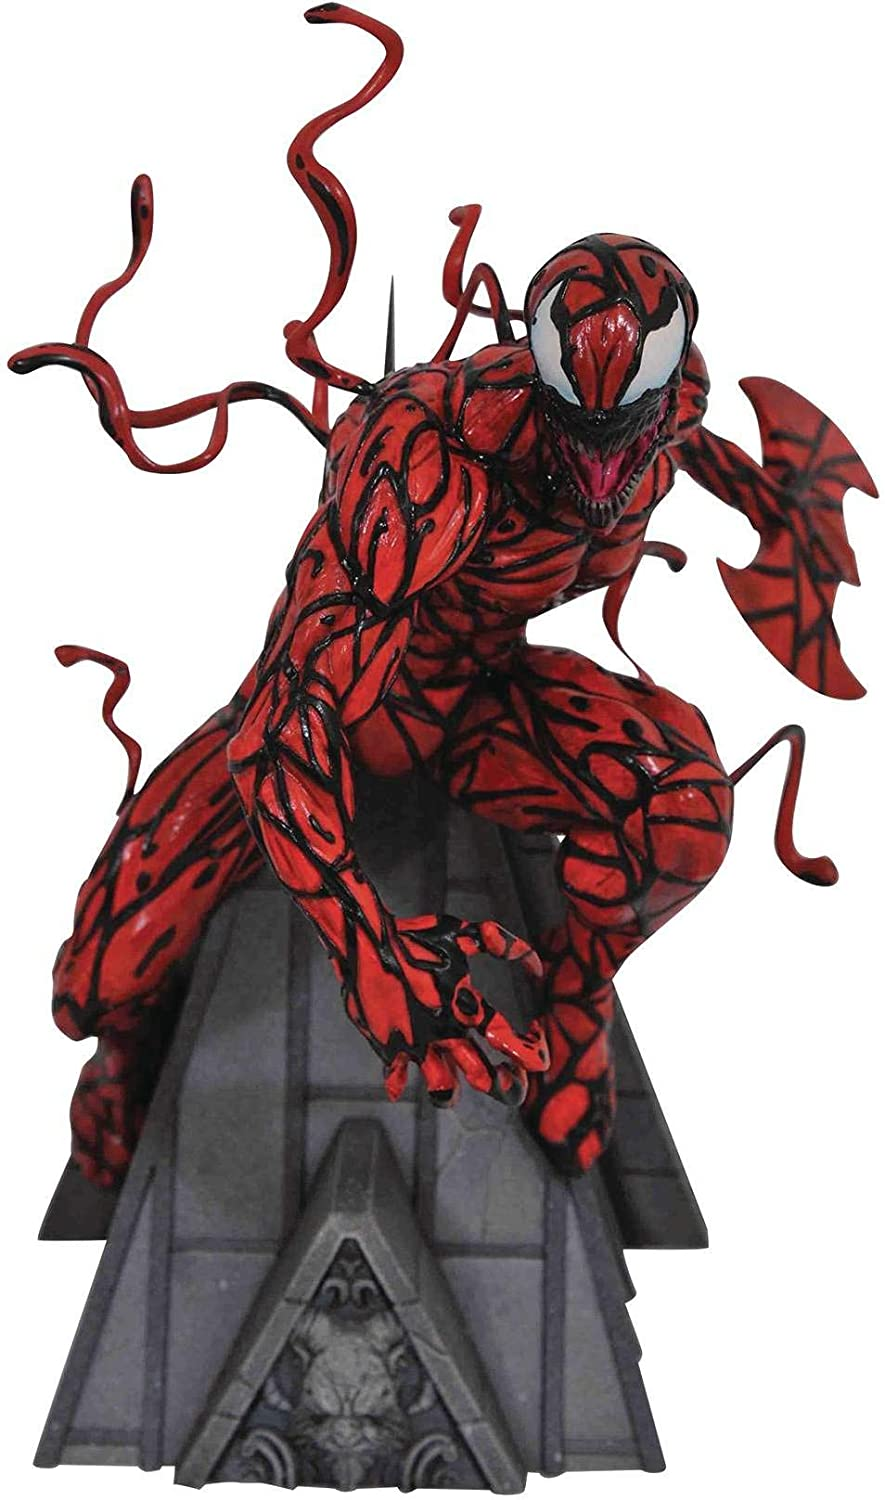 DIAMOND SELECT TOYS Marvel Premier Collection: Carnage Resin Statue,Multicolor,12 inches